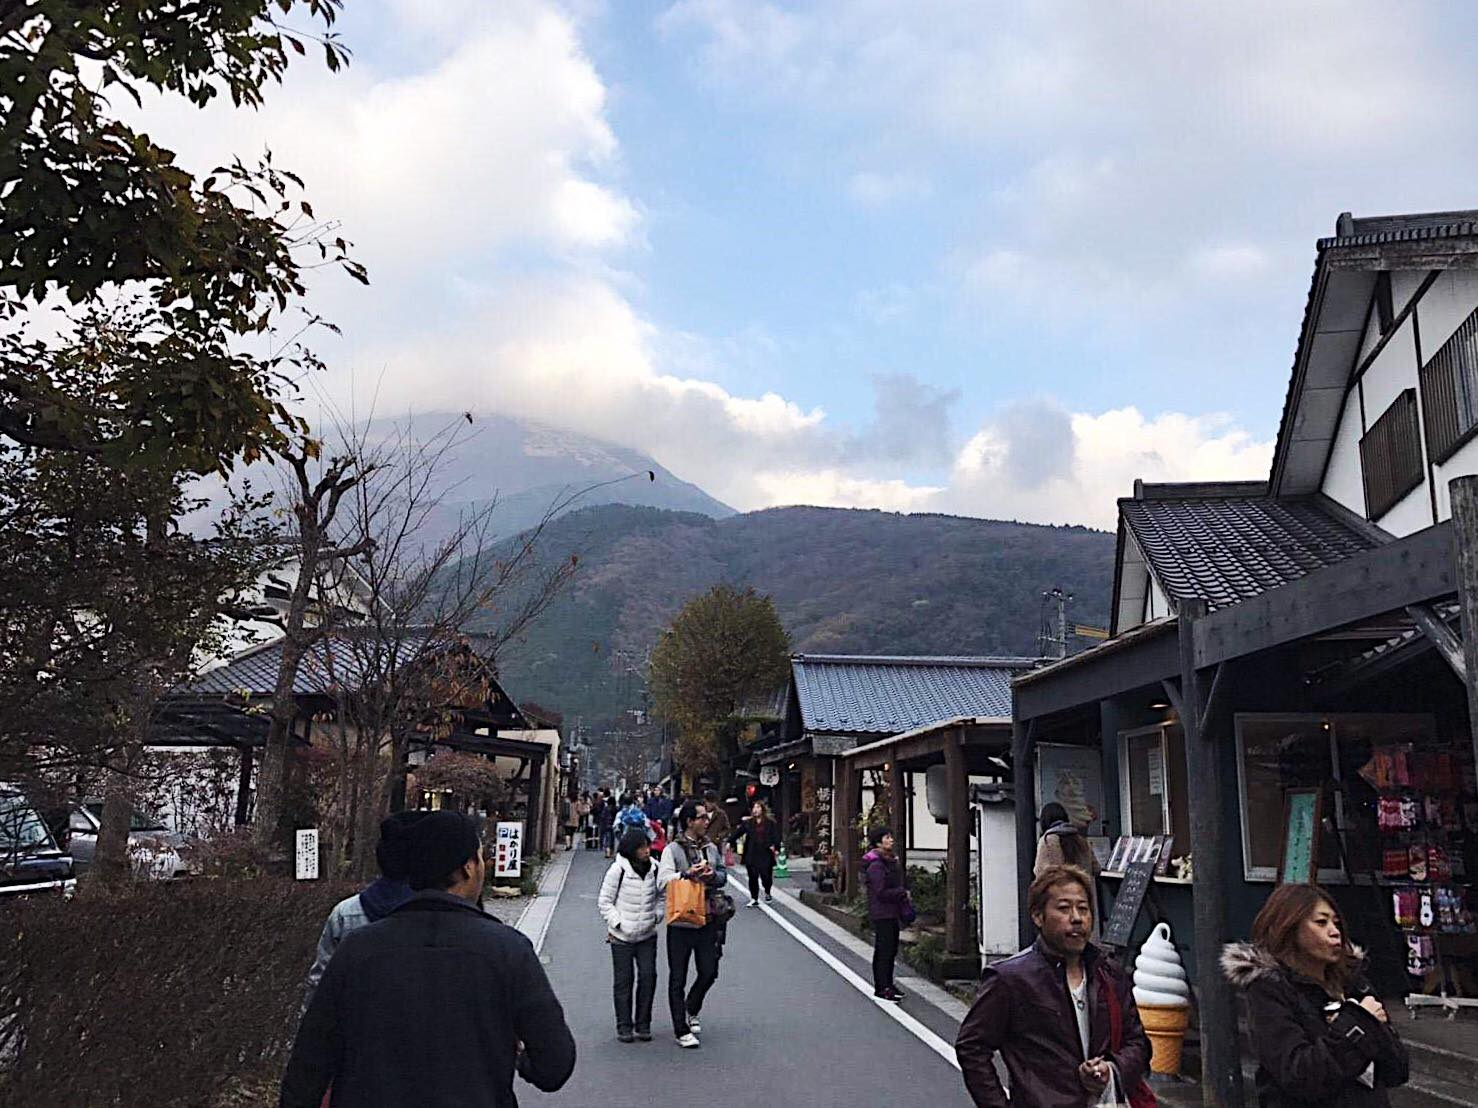 Picture of a street in Yufuin with the backdrop of mountains